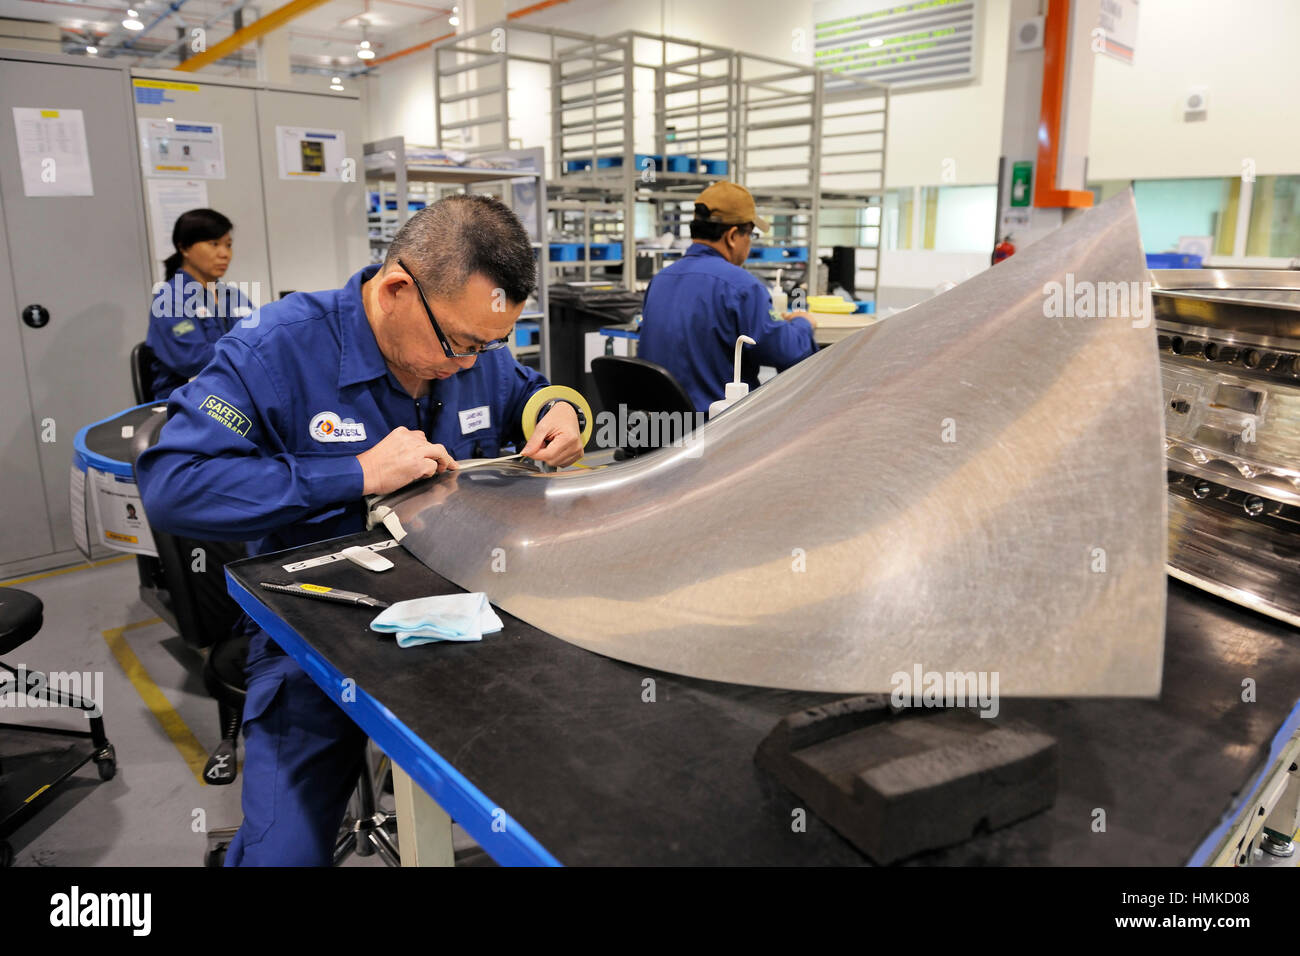 Rolls-Royce Trent jet aero-engine maintenance and overhaul at SAESL Singapore Aero Engine Services Pte Ltd Stock Photo